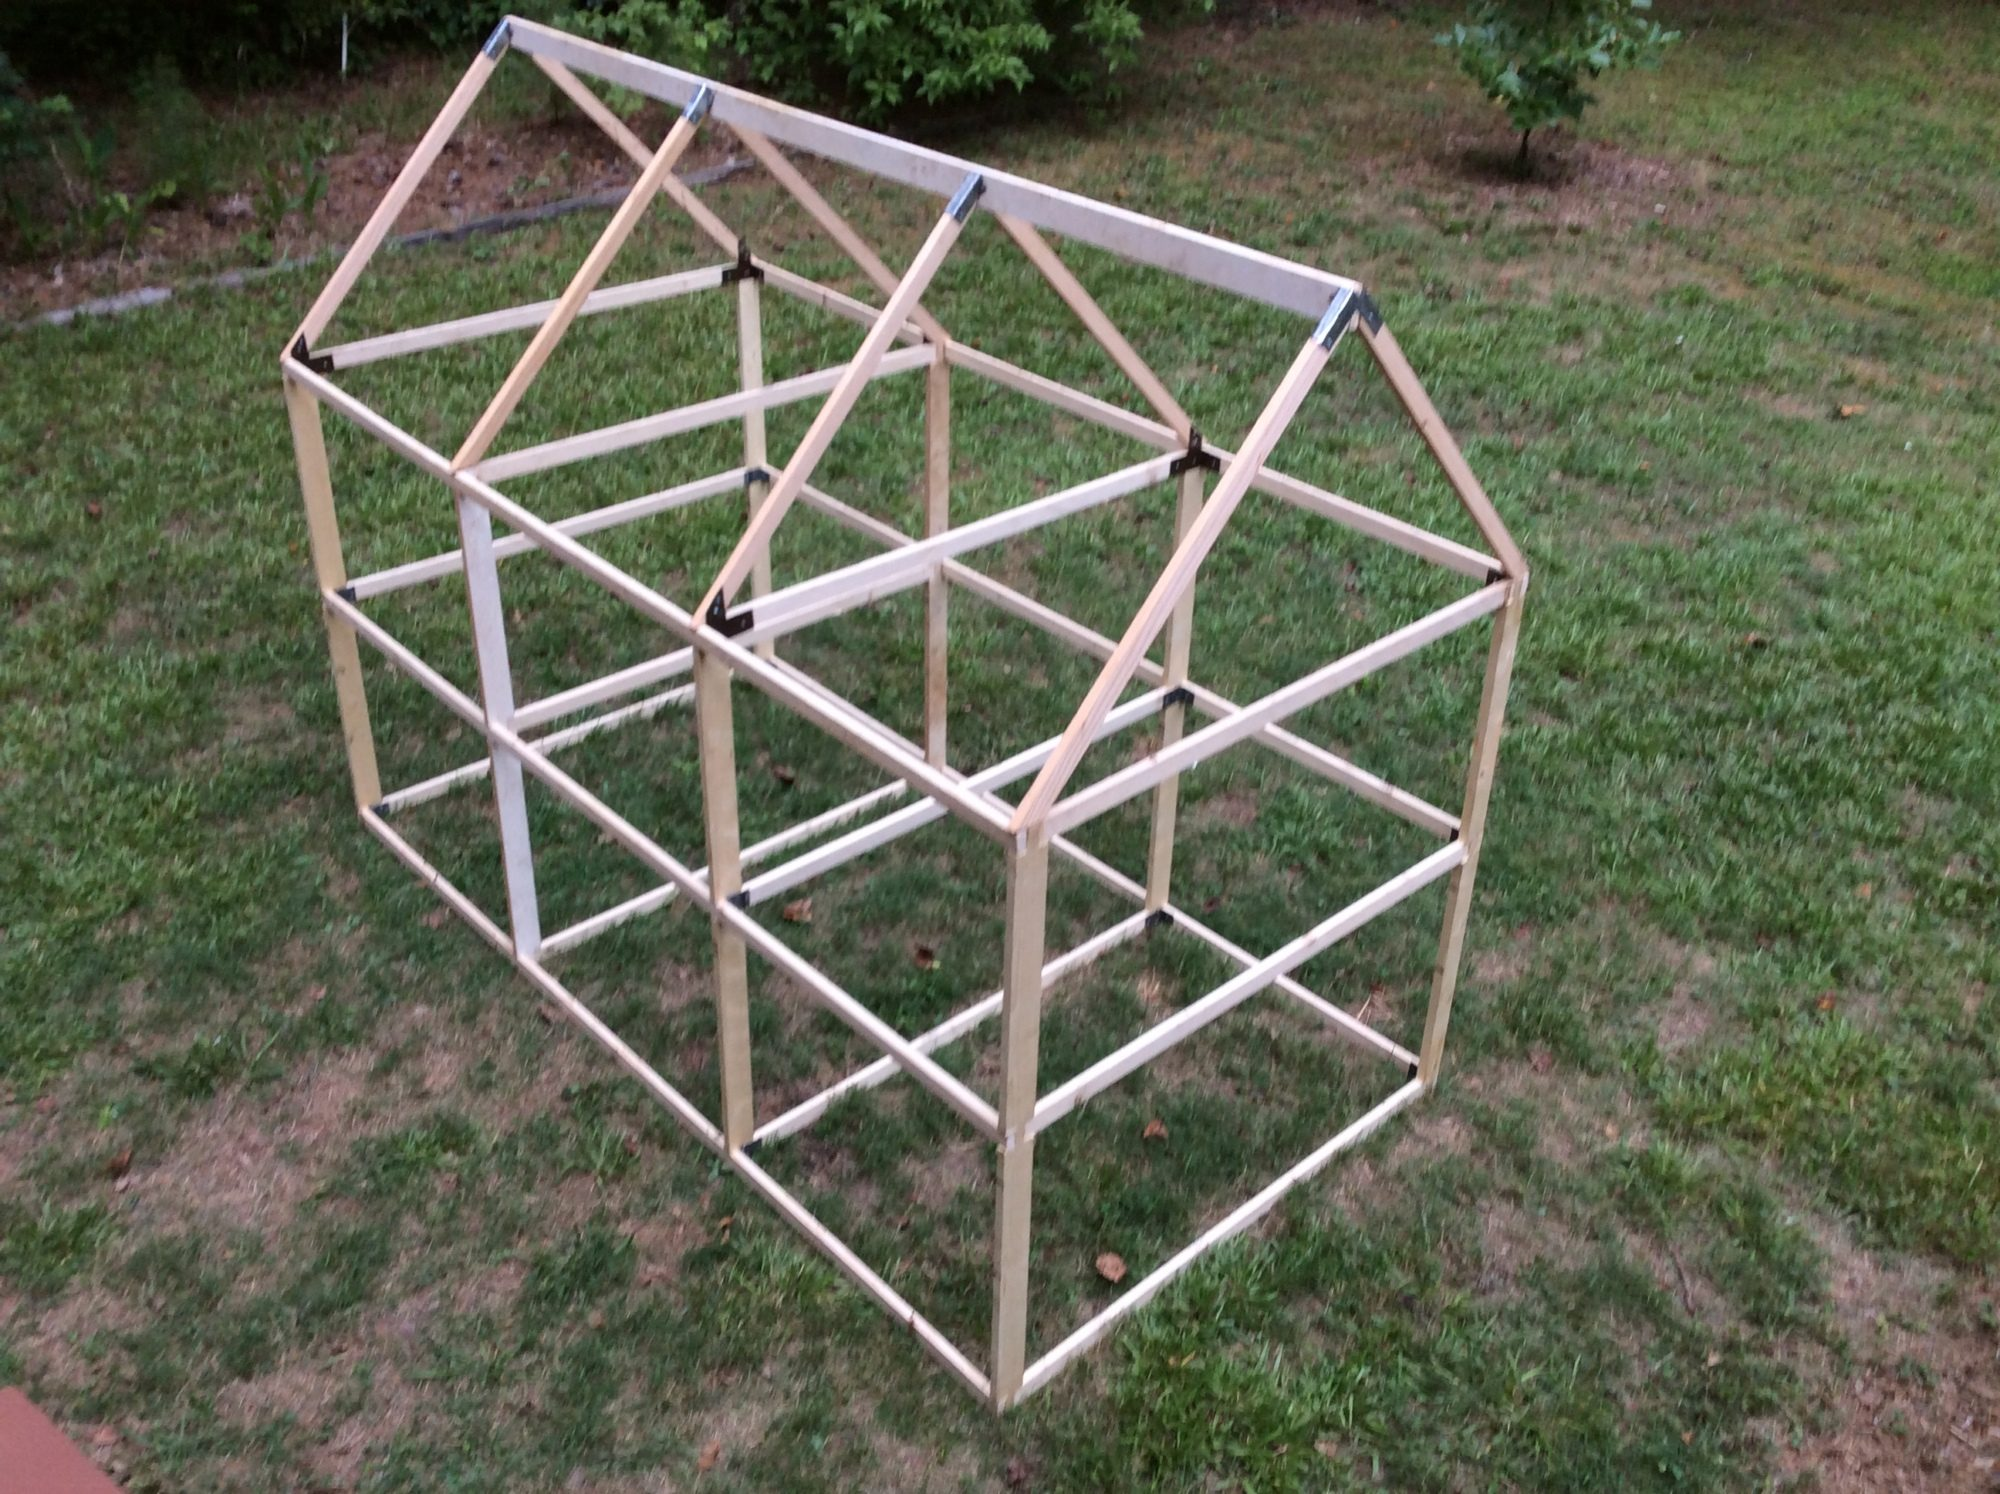 Frame for the Gurlz new chicken tractor.